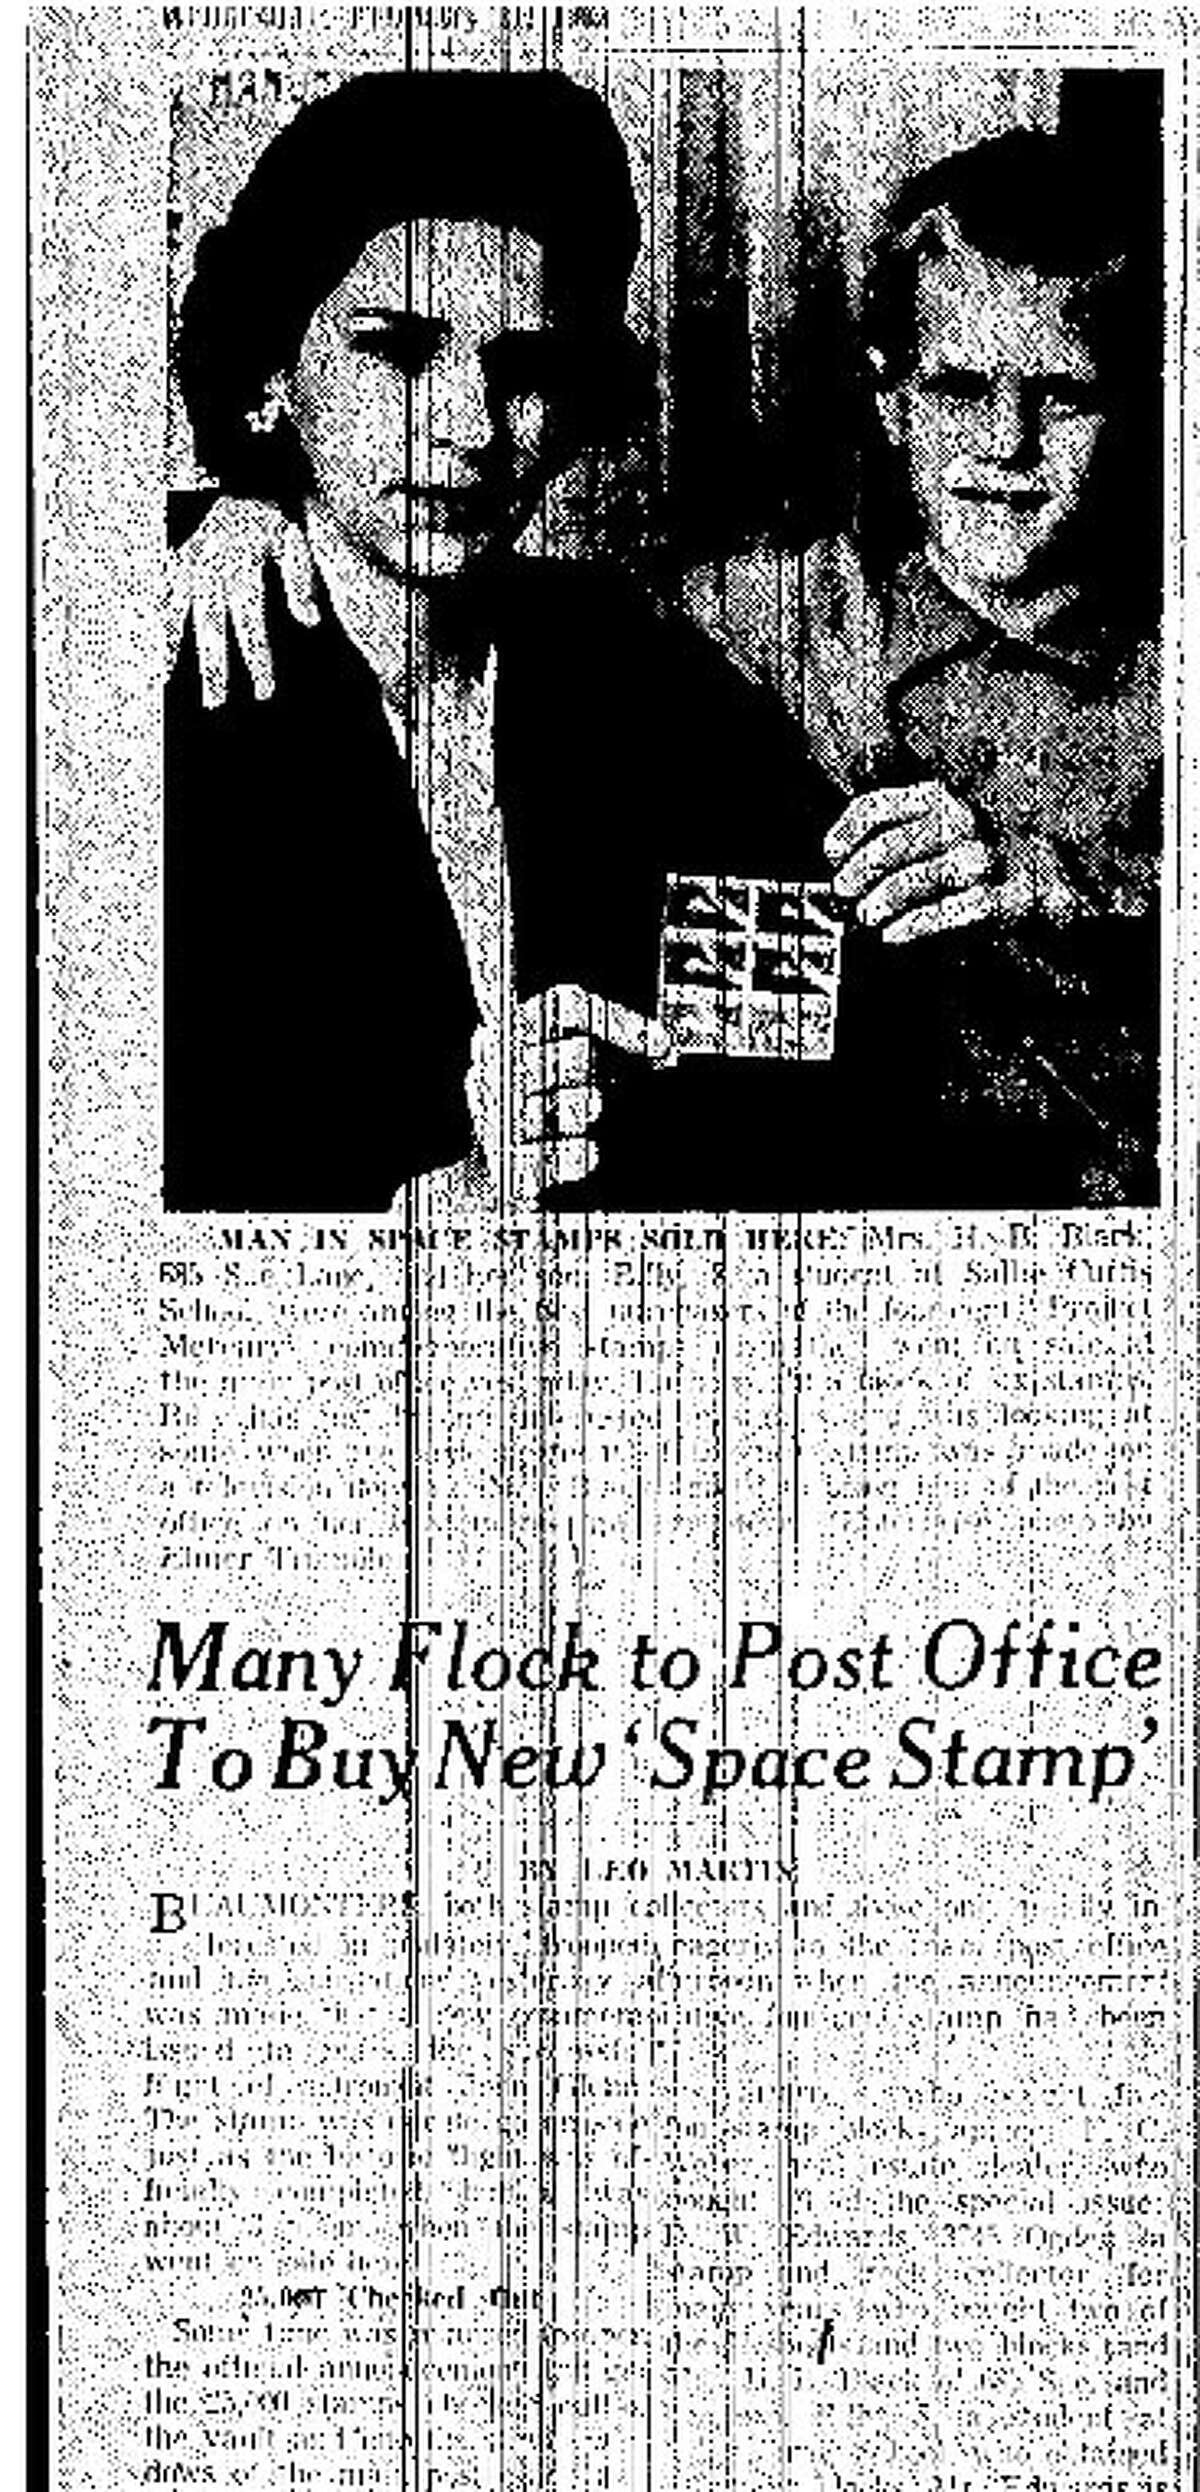 A young Bill Black and his mother Inge Black in a 1962 copy of the Beaumont Enterprise. The two were photogrpahed while purchasing the 4-cent Project Mercury postage stamp at Beaumont's main Post Office. Enterprise file photo